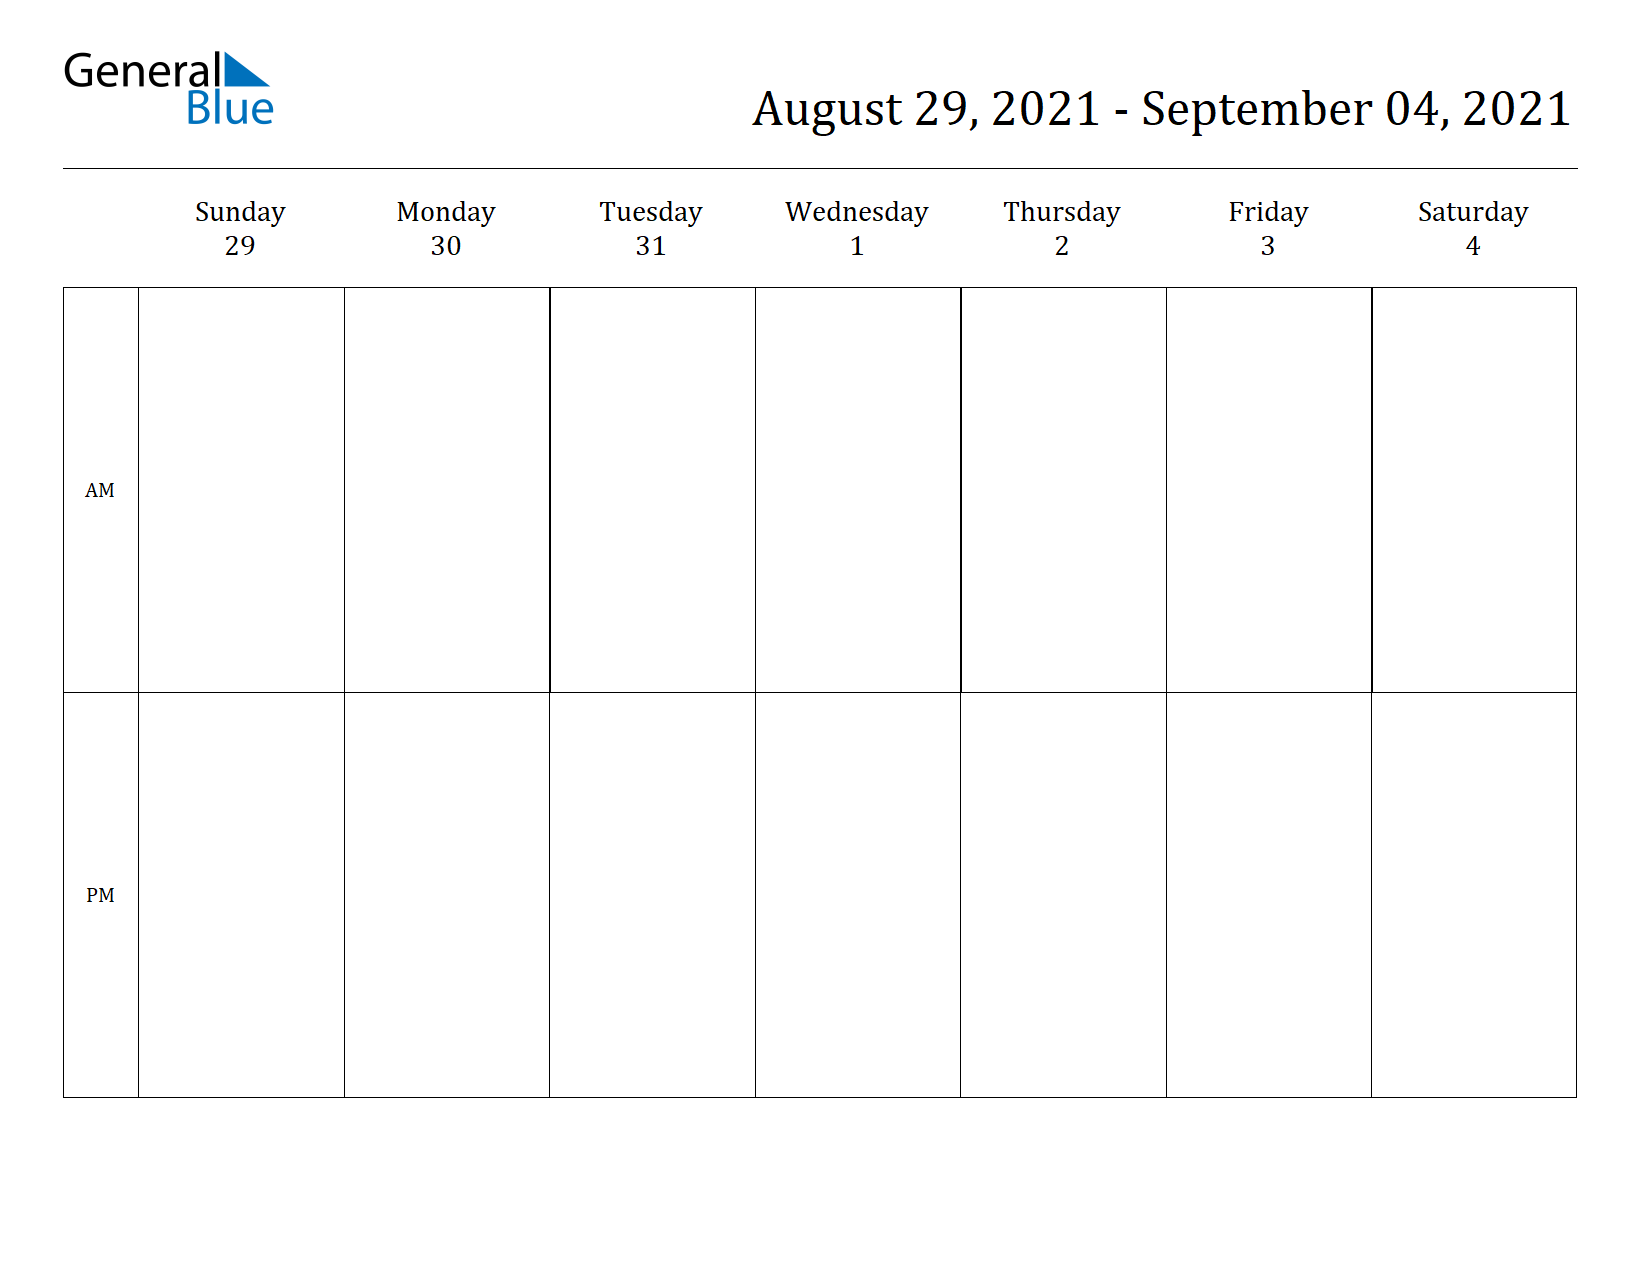 Weekly Calendar for Aug 29, 2021 to Sep 04, 2021